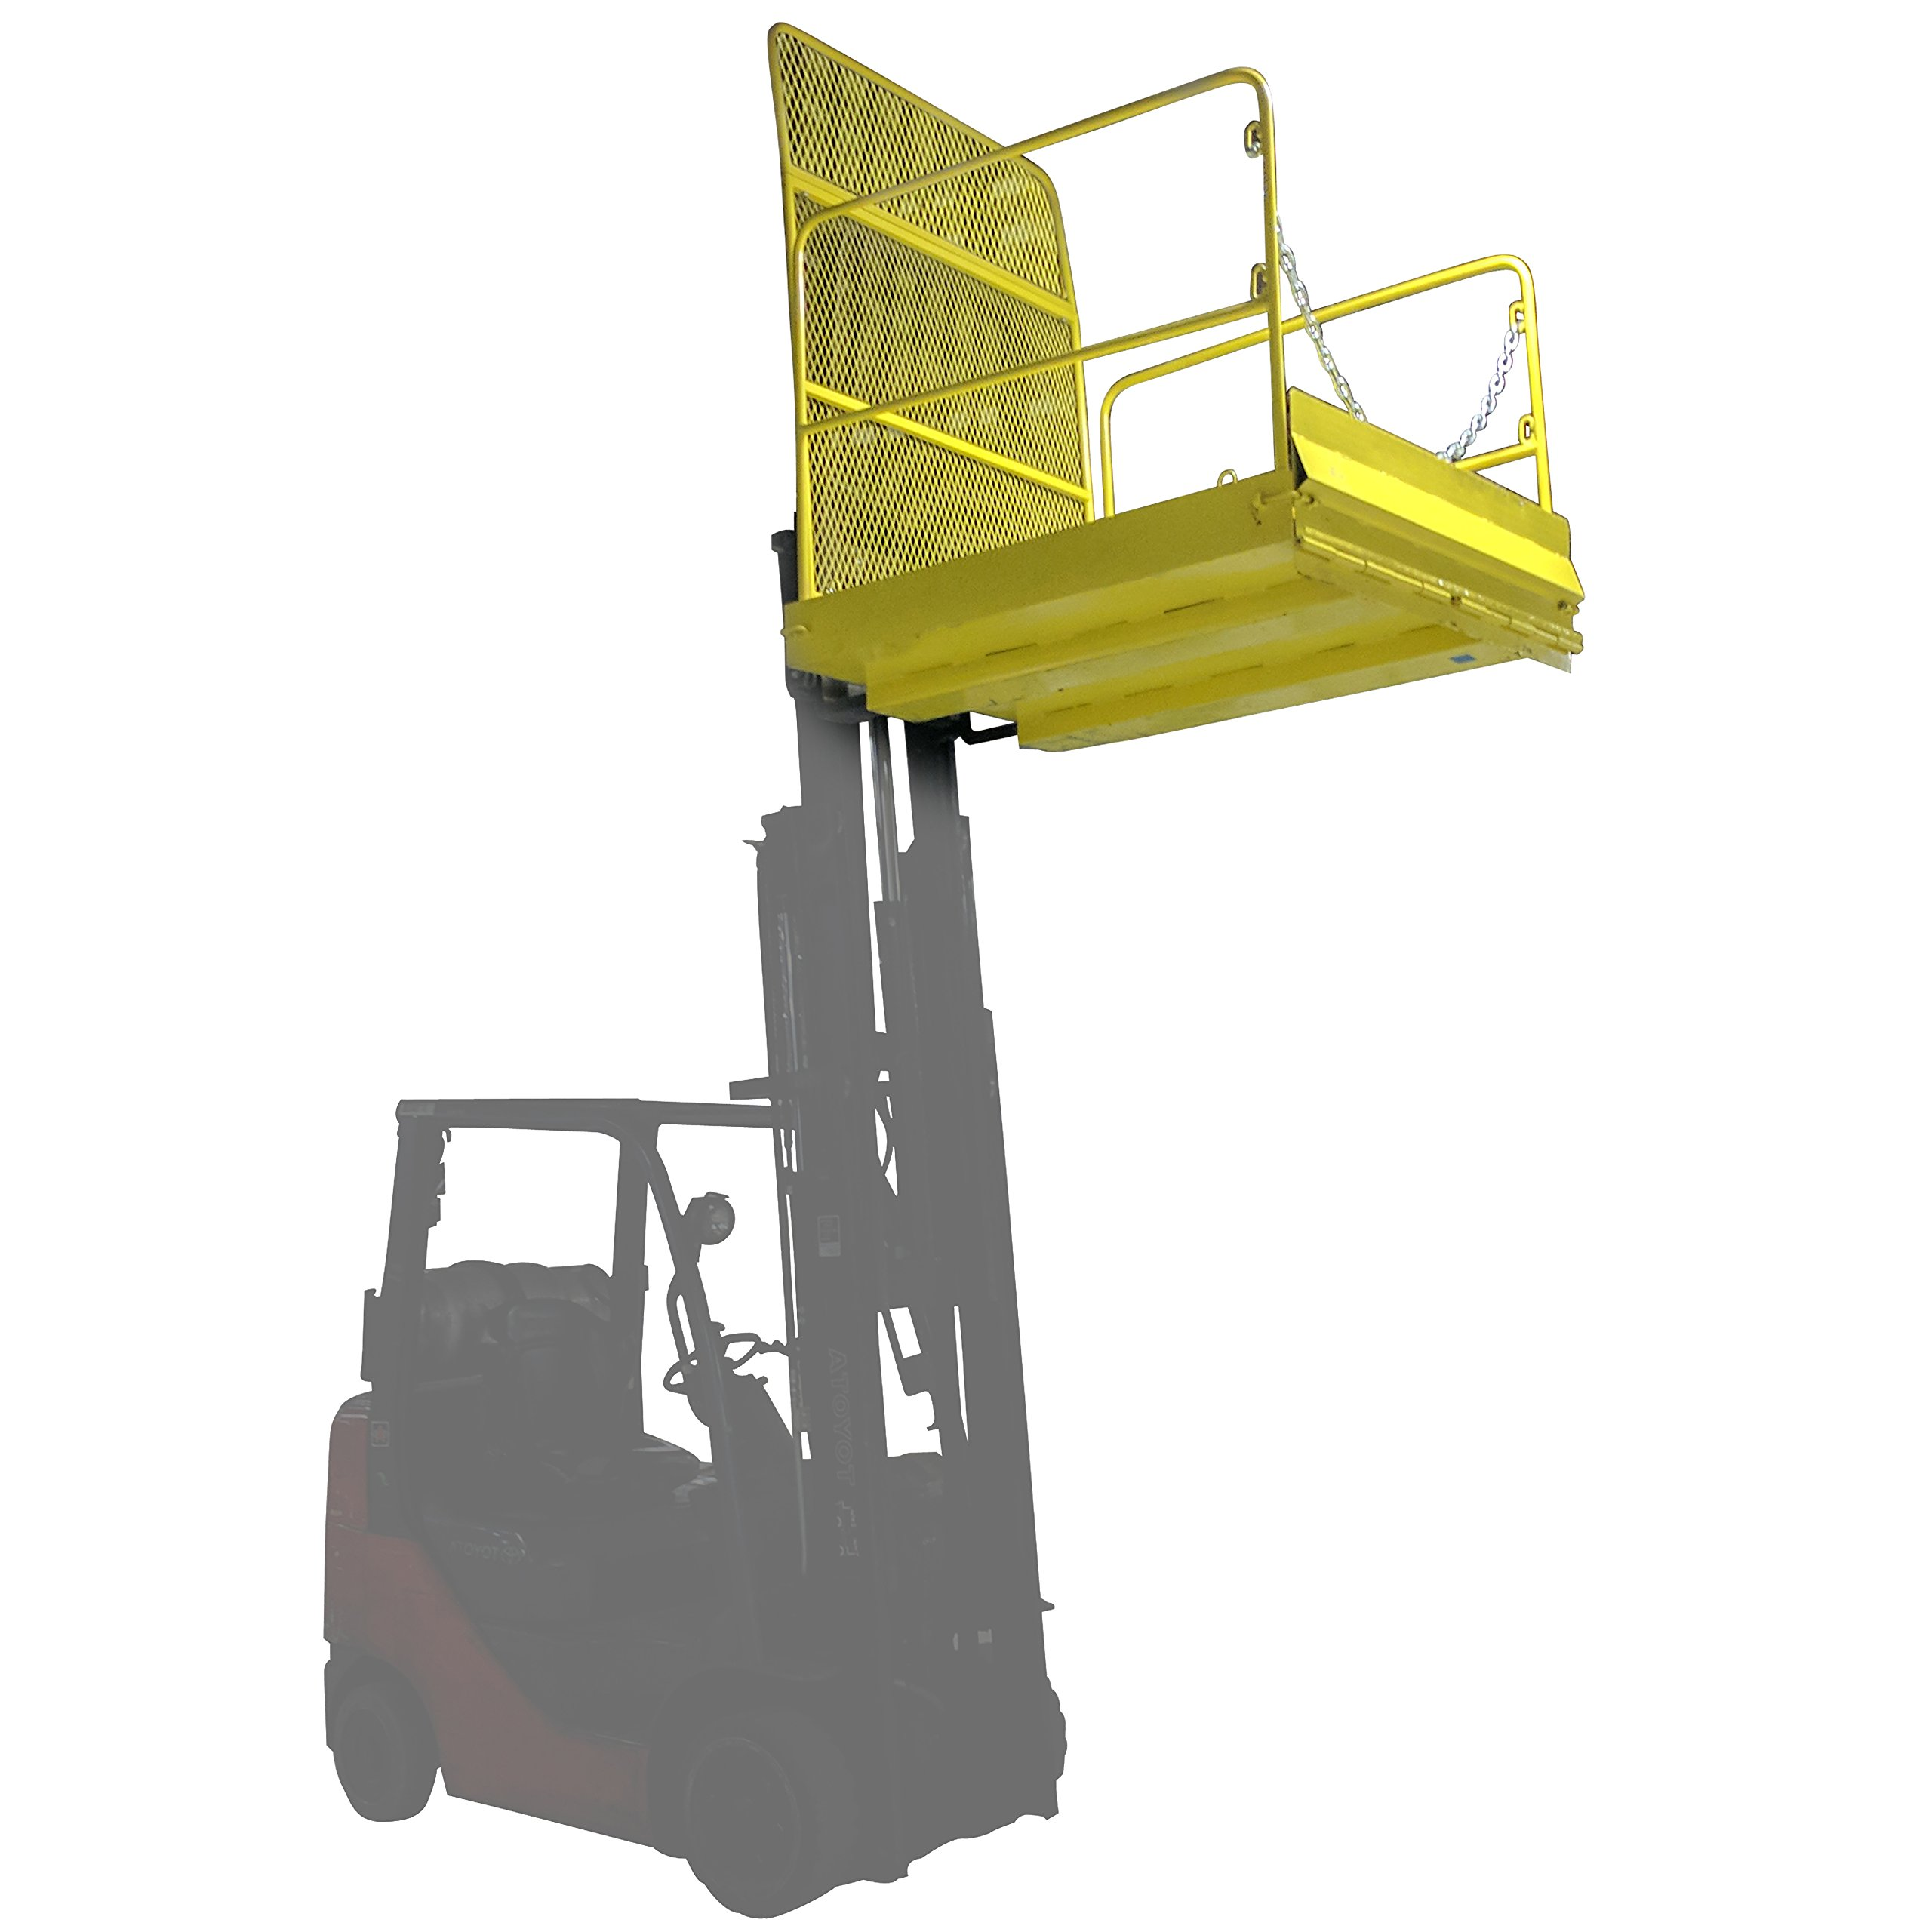 54'' x 54'' Loading Work Platform w/ Handrails - 2,000 LB Capacity by Titan Attachments (Image #6)